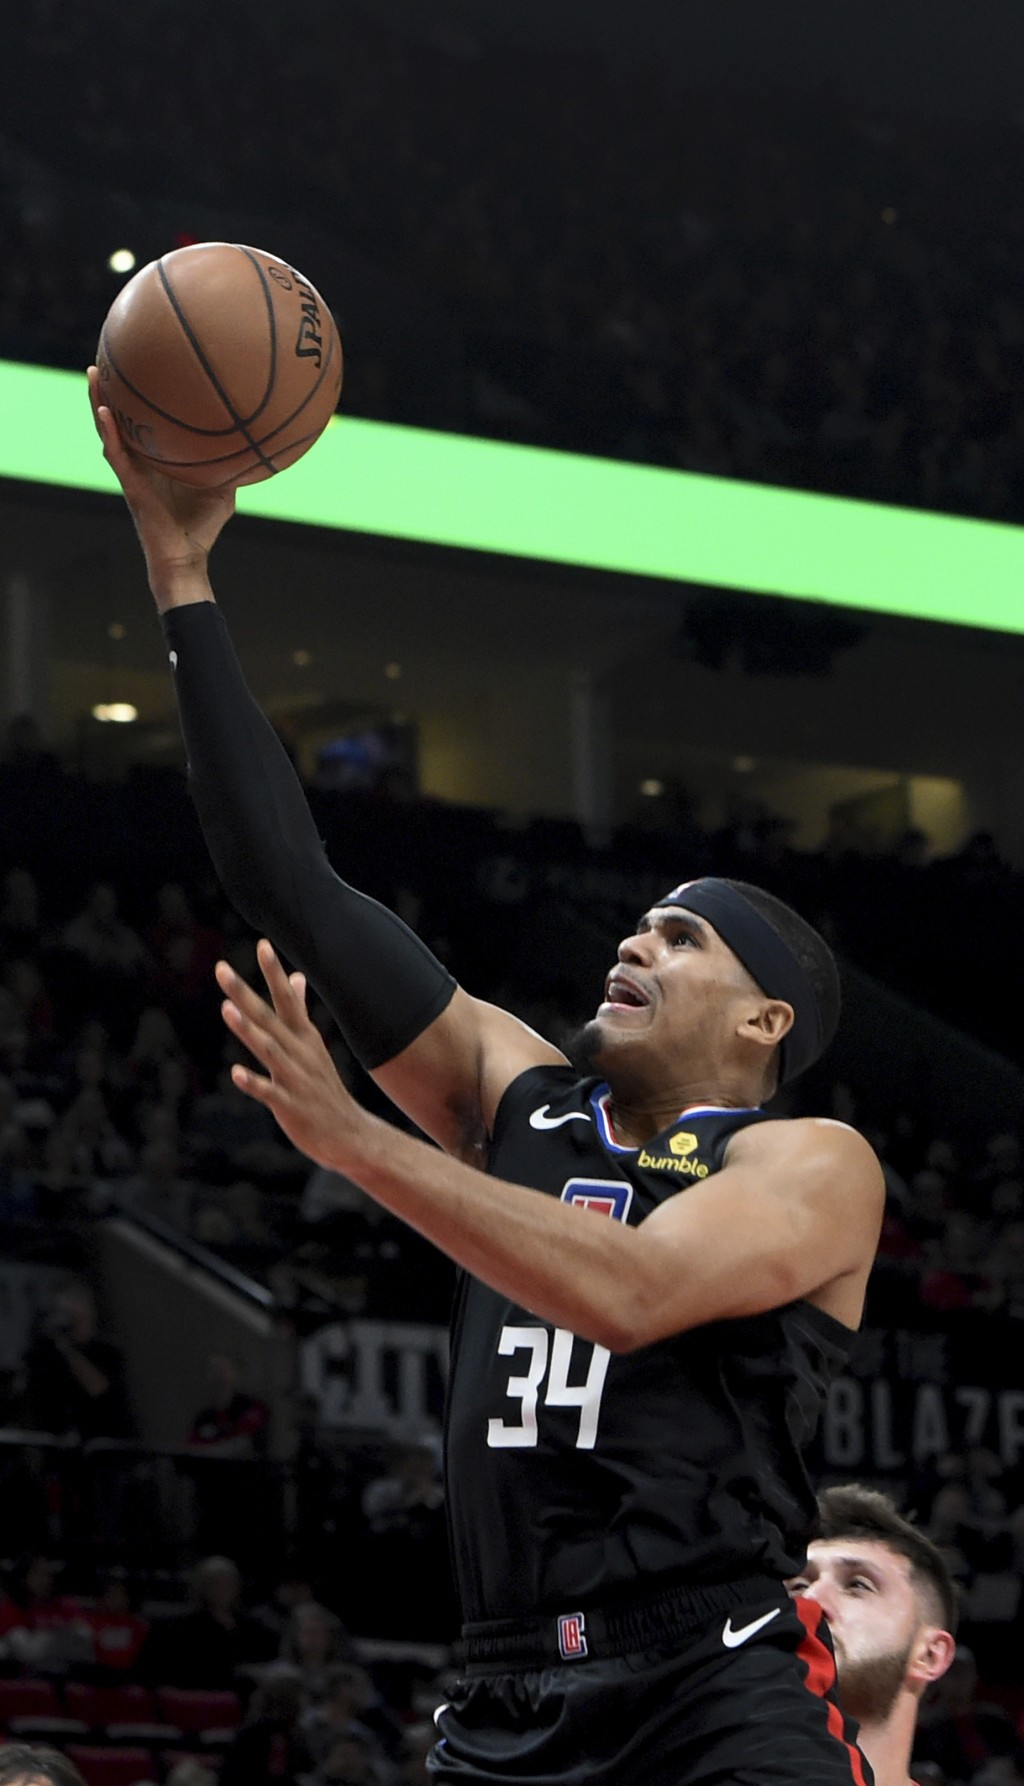 Los Angeles Clippers forward Tobias Harris, left, drives to the basket past Portland Trail Blazers center Jusuf Nurkic, right, during the first half o